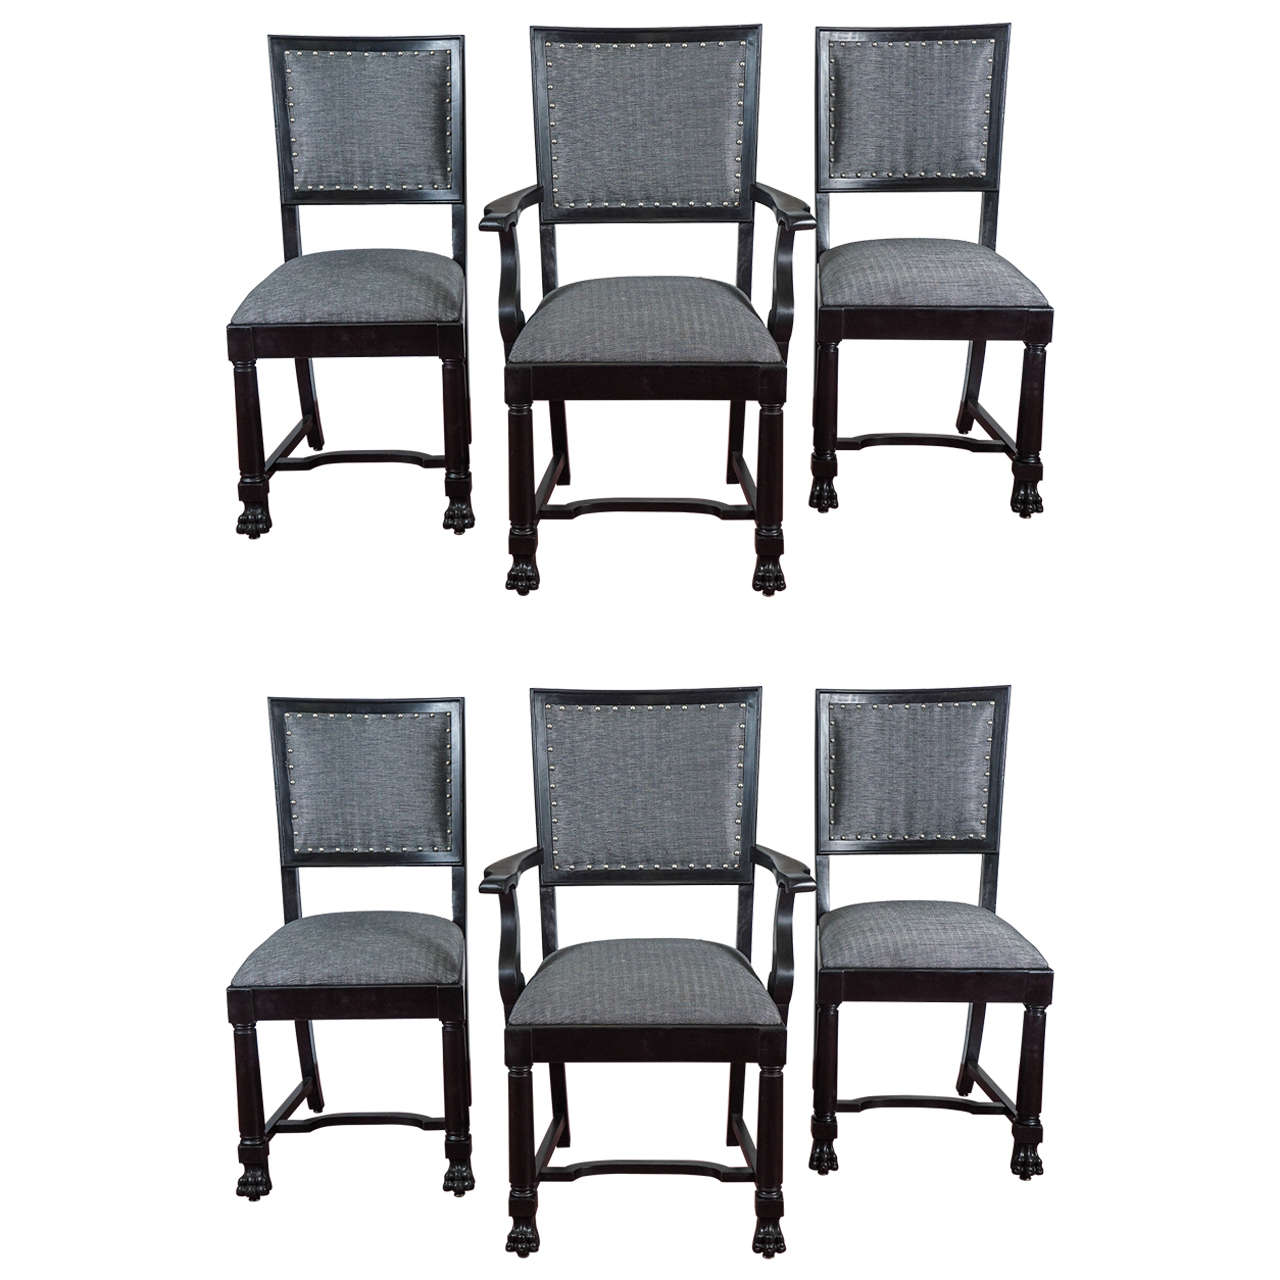 Ebonized Arts and Crafts Style Dining Chairs